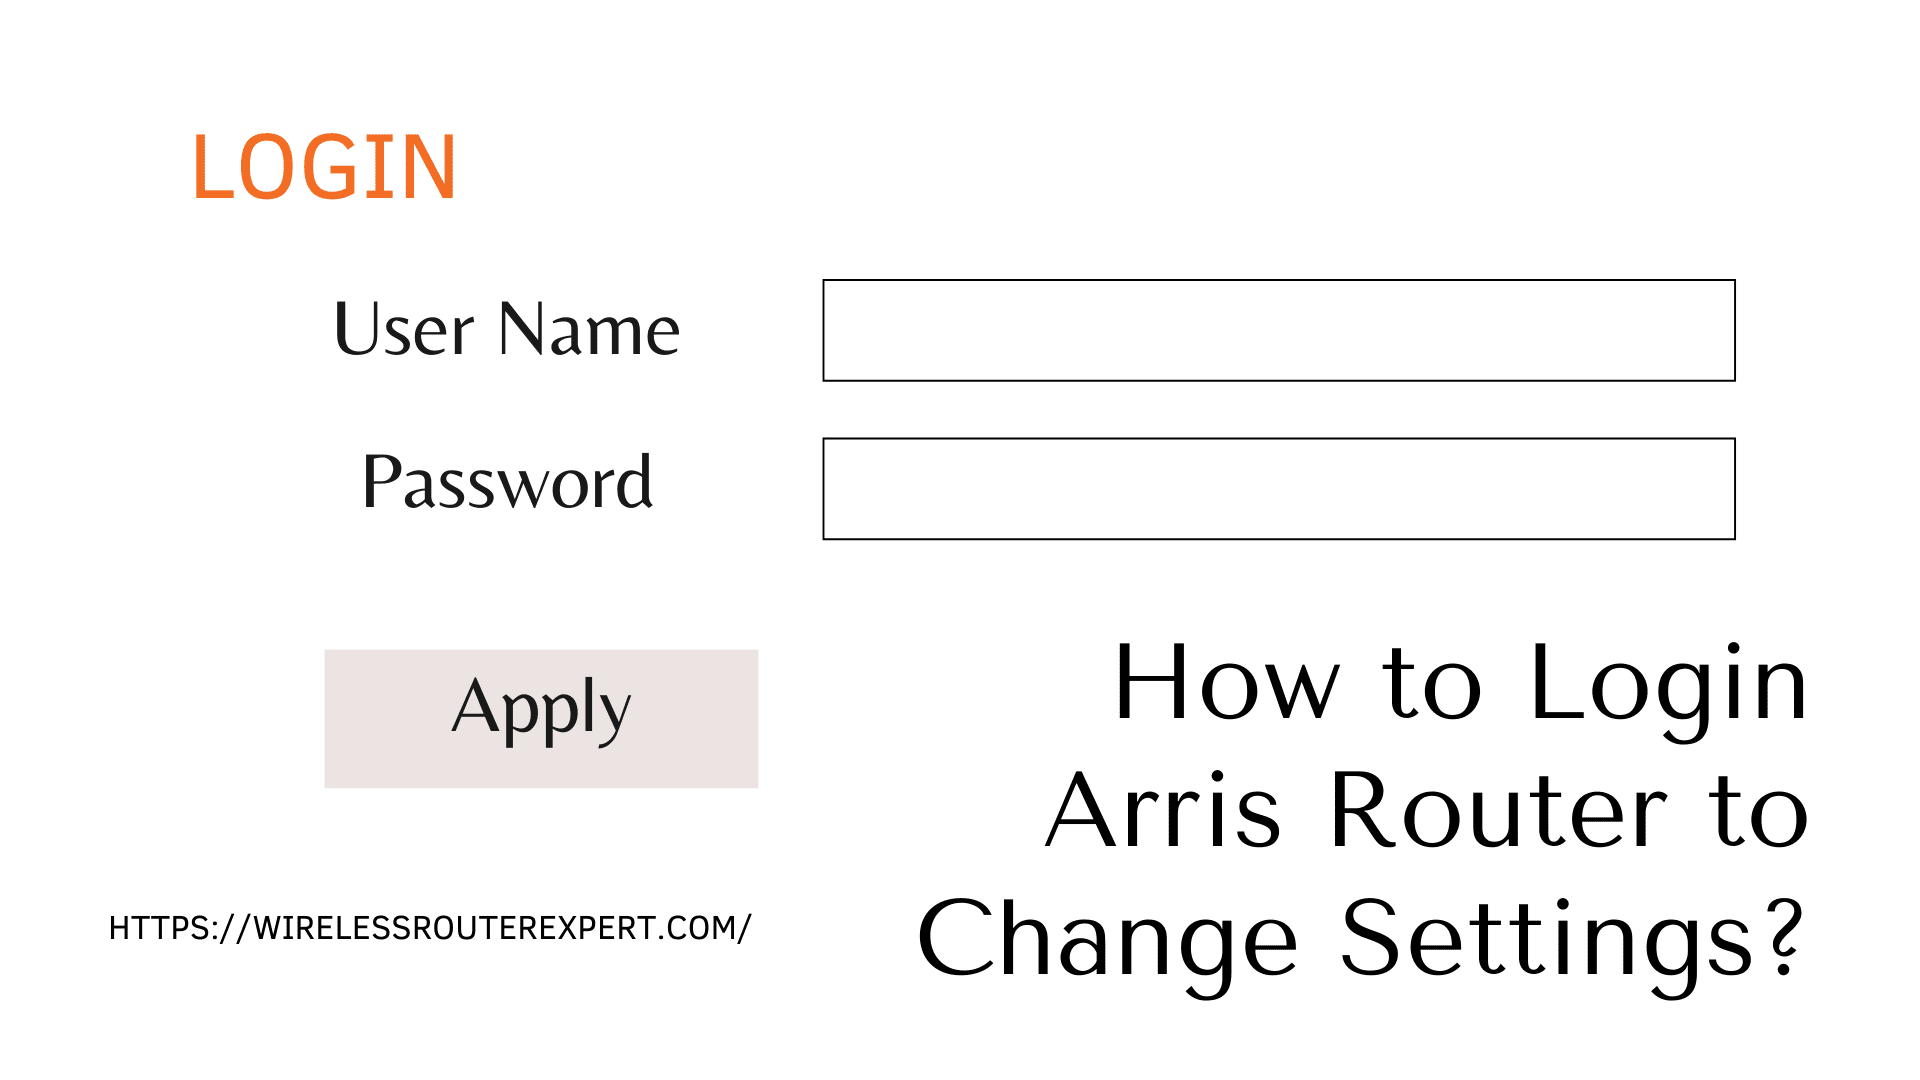 How to Login Arris Router to Change Settings